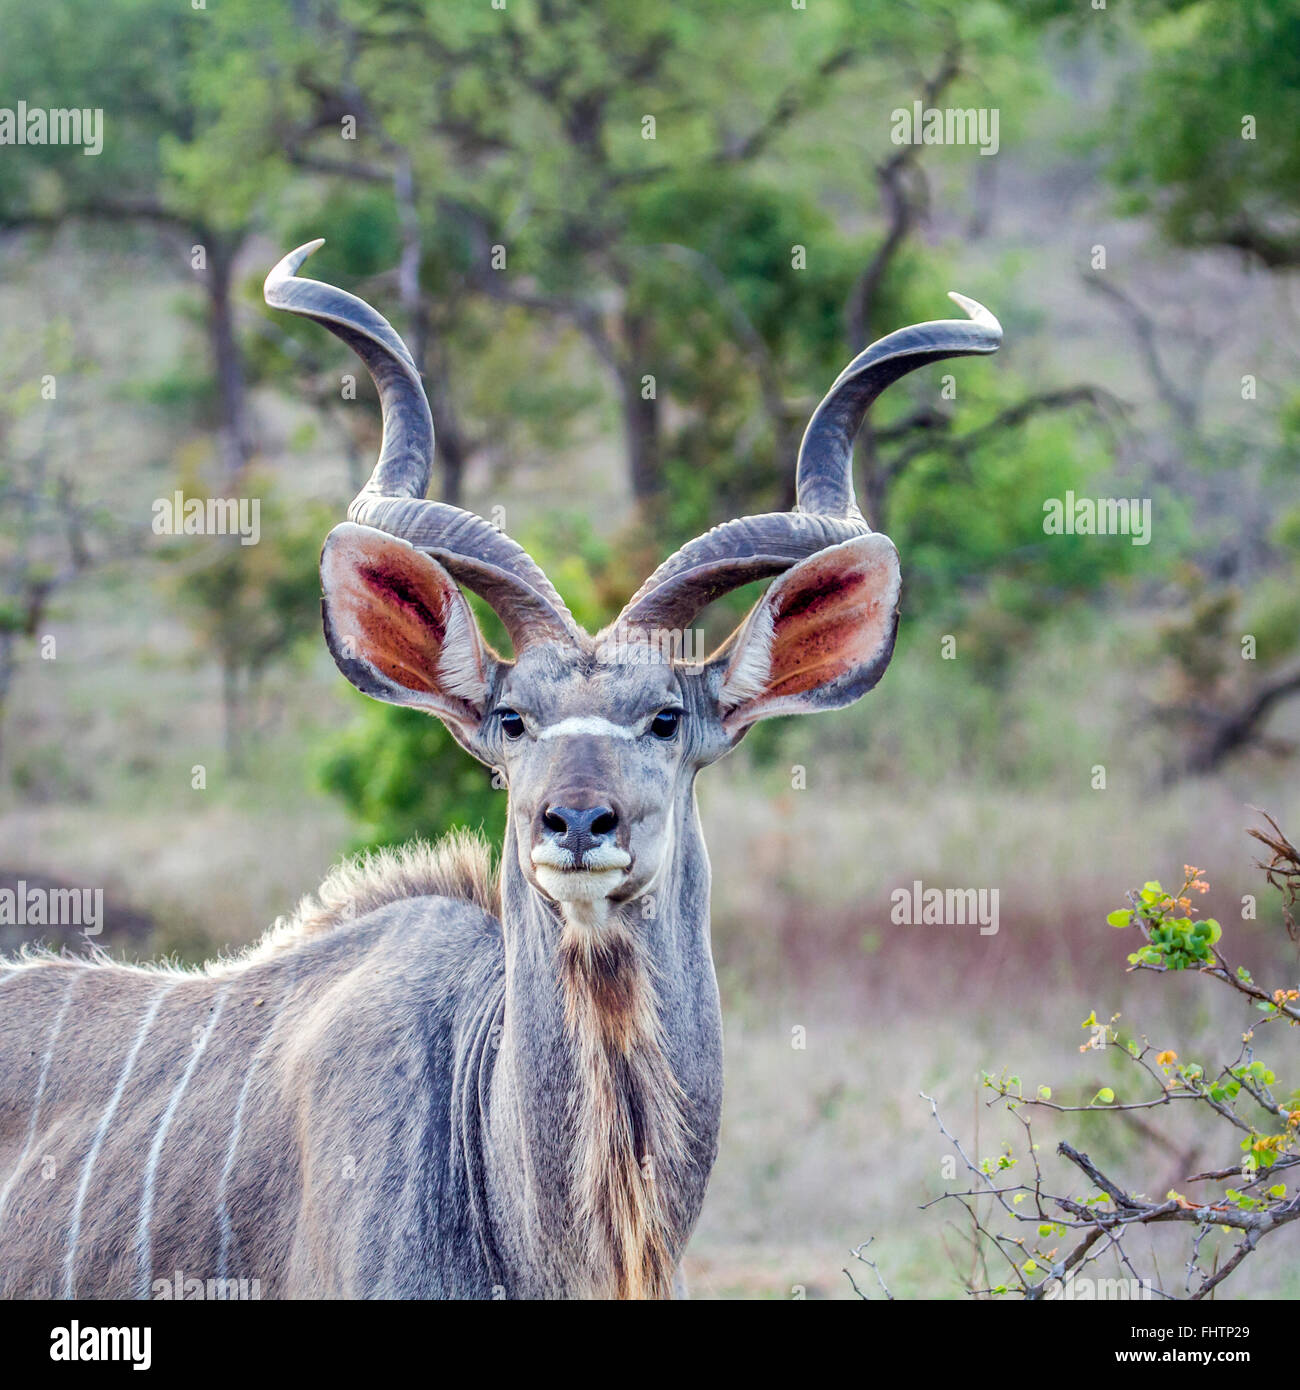 Greater kudu ; Specie Tragelaphus strepsiceros family of bovidae Kruger national park, South Africa - Stock Image